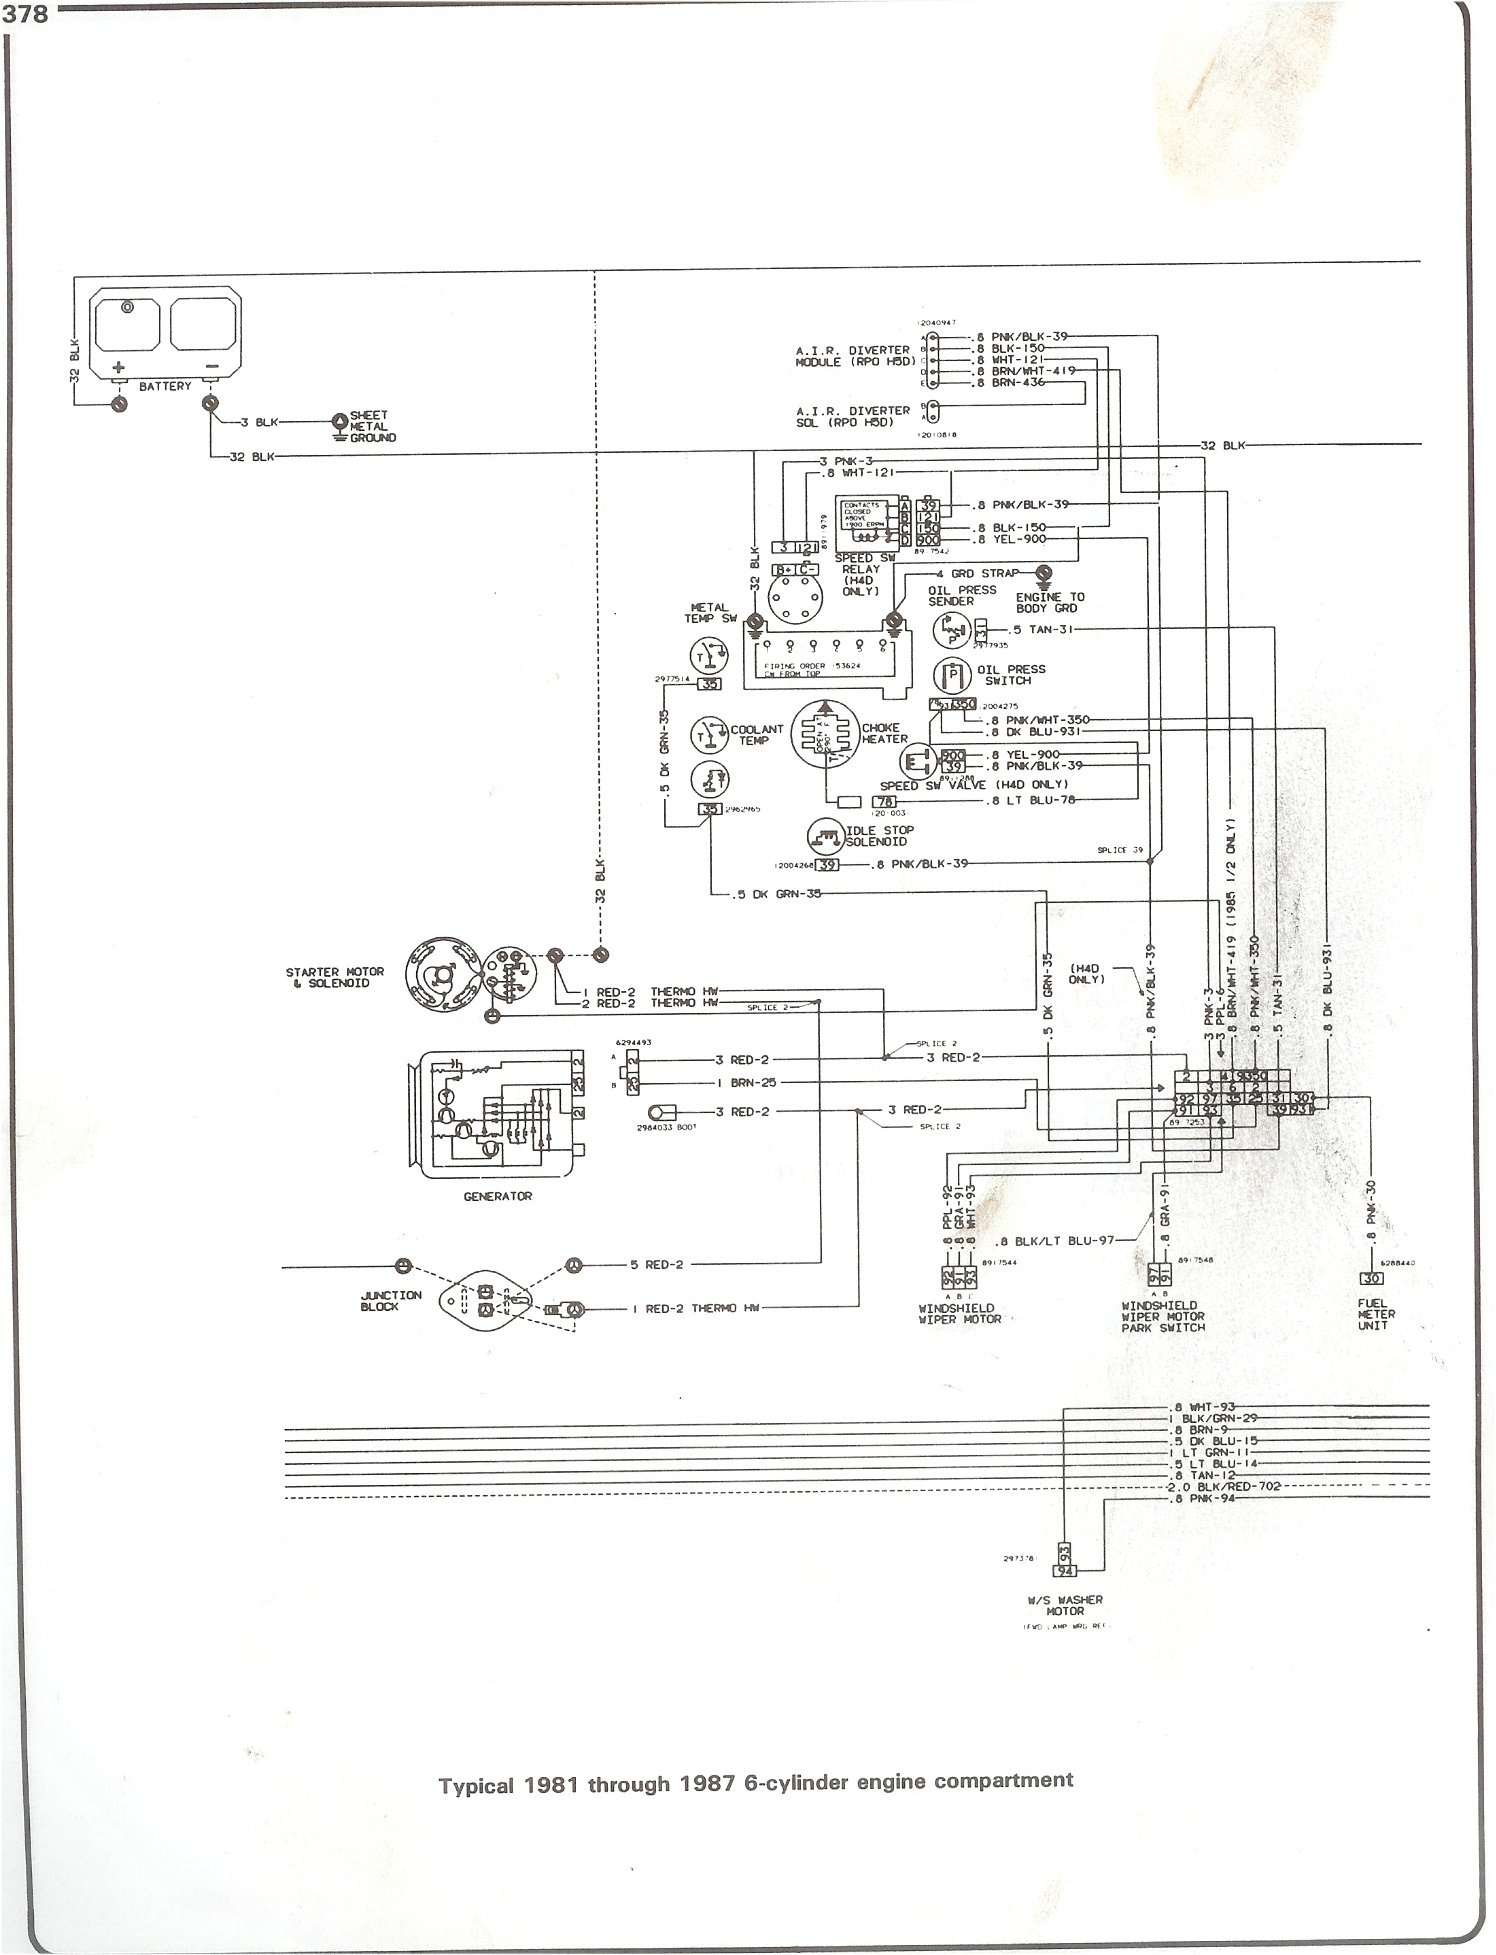 Complete 73 87 Wiring Diagrams Lincoln Welder Starter Switch Diagram 81 I6 Engine Compartment